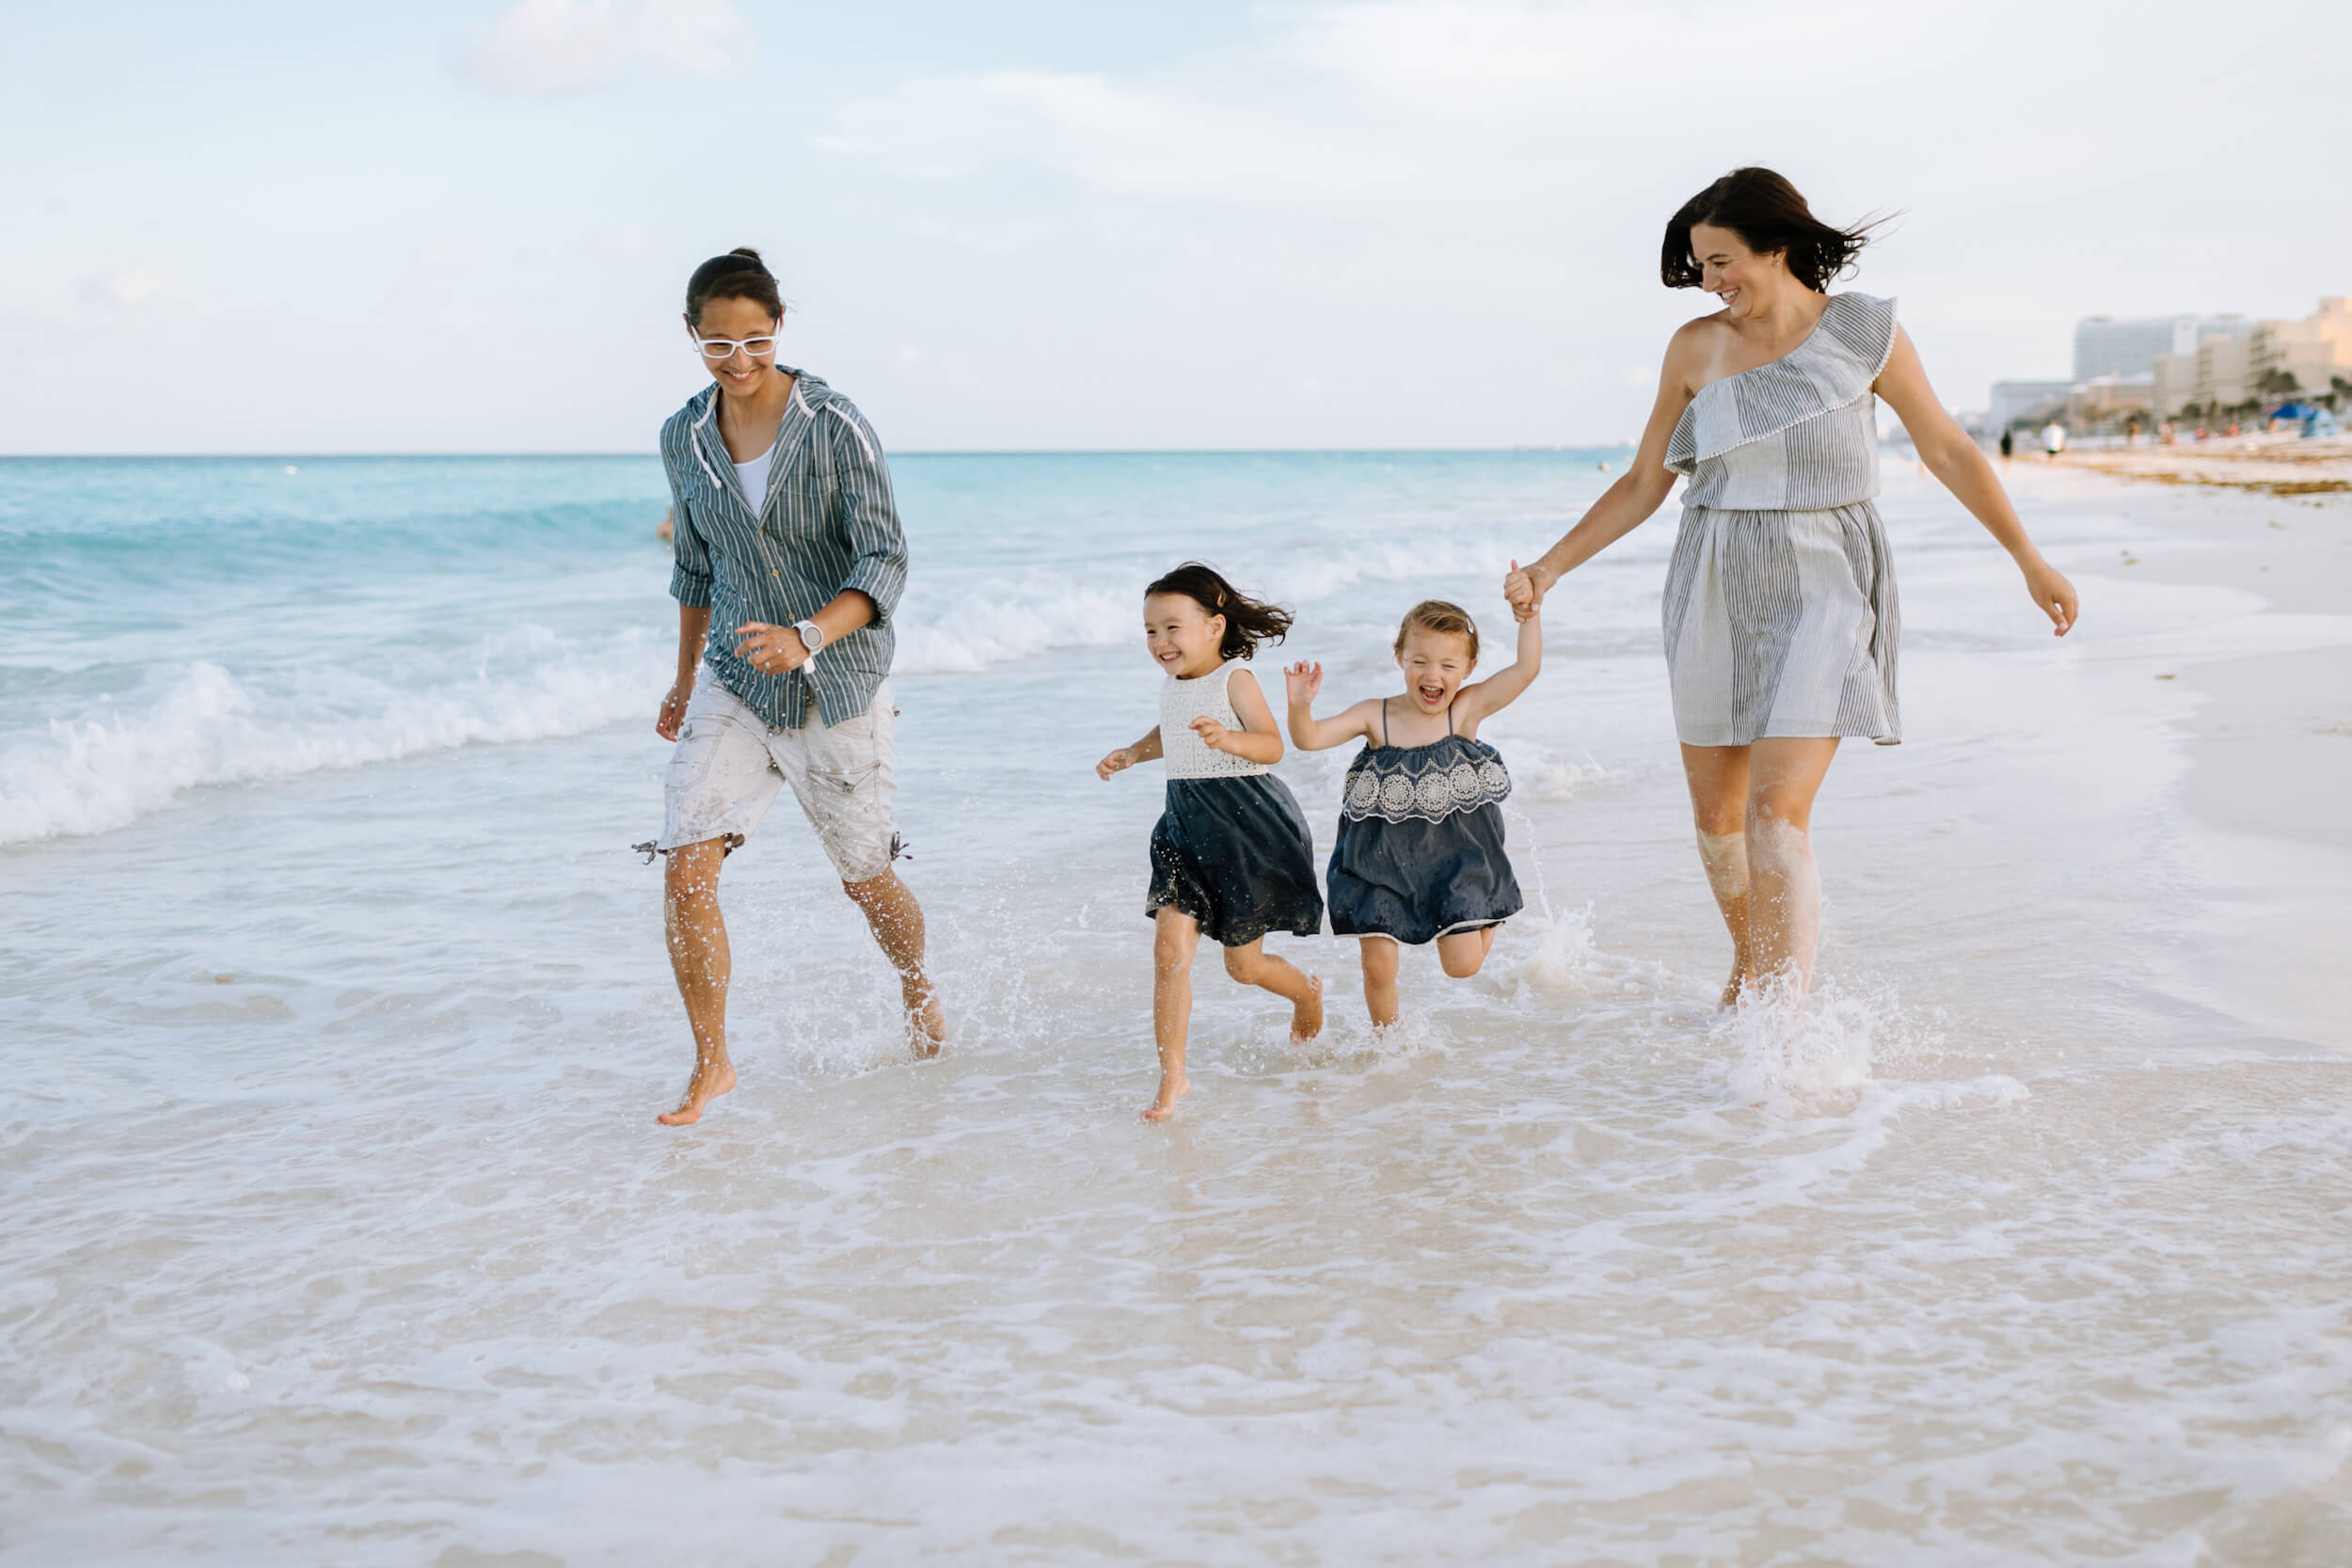 Two moms and their little girls run in the surf in Cancun, Mexico.